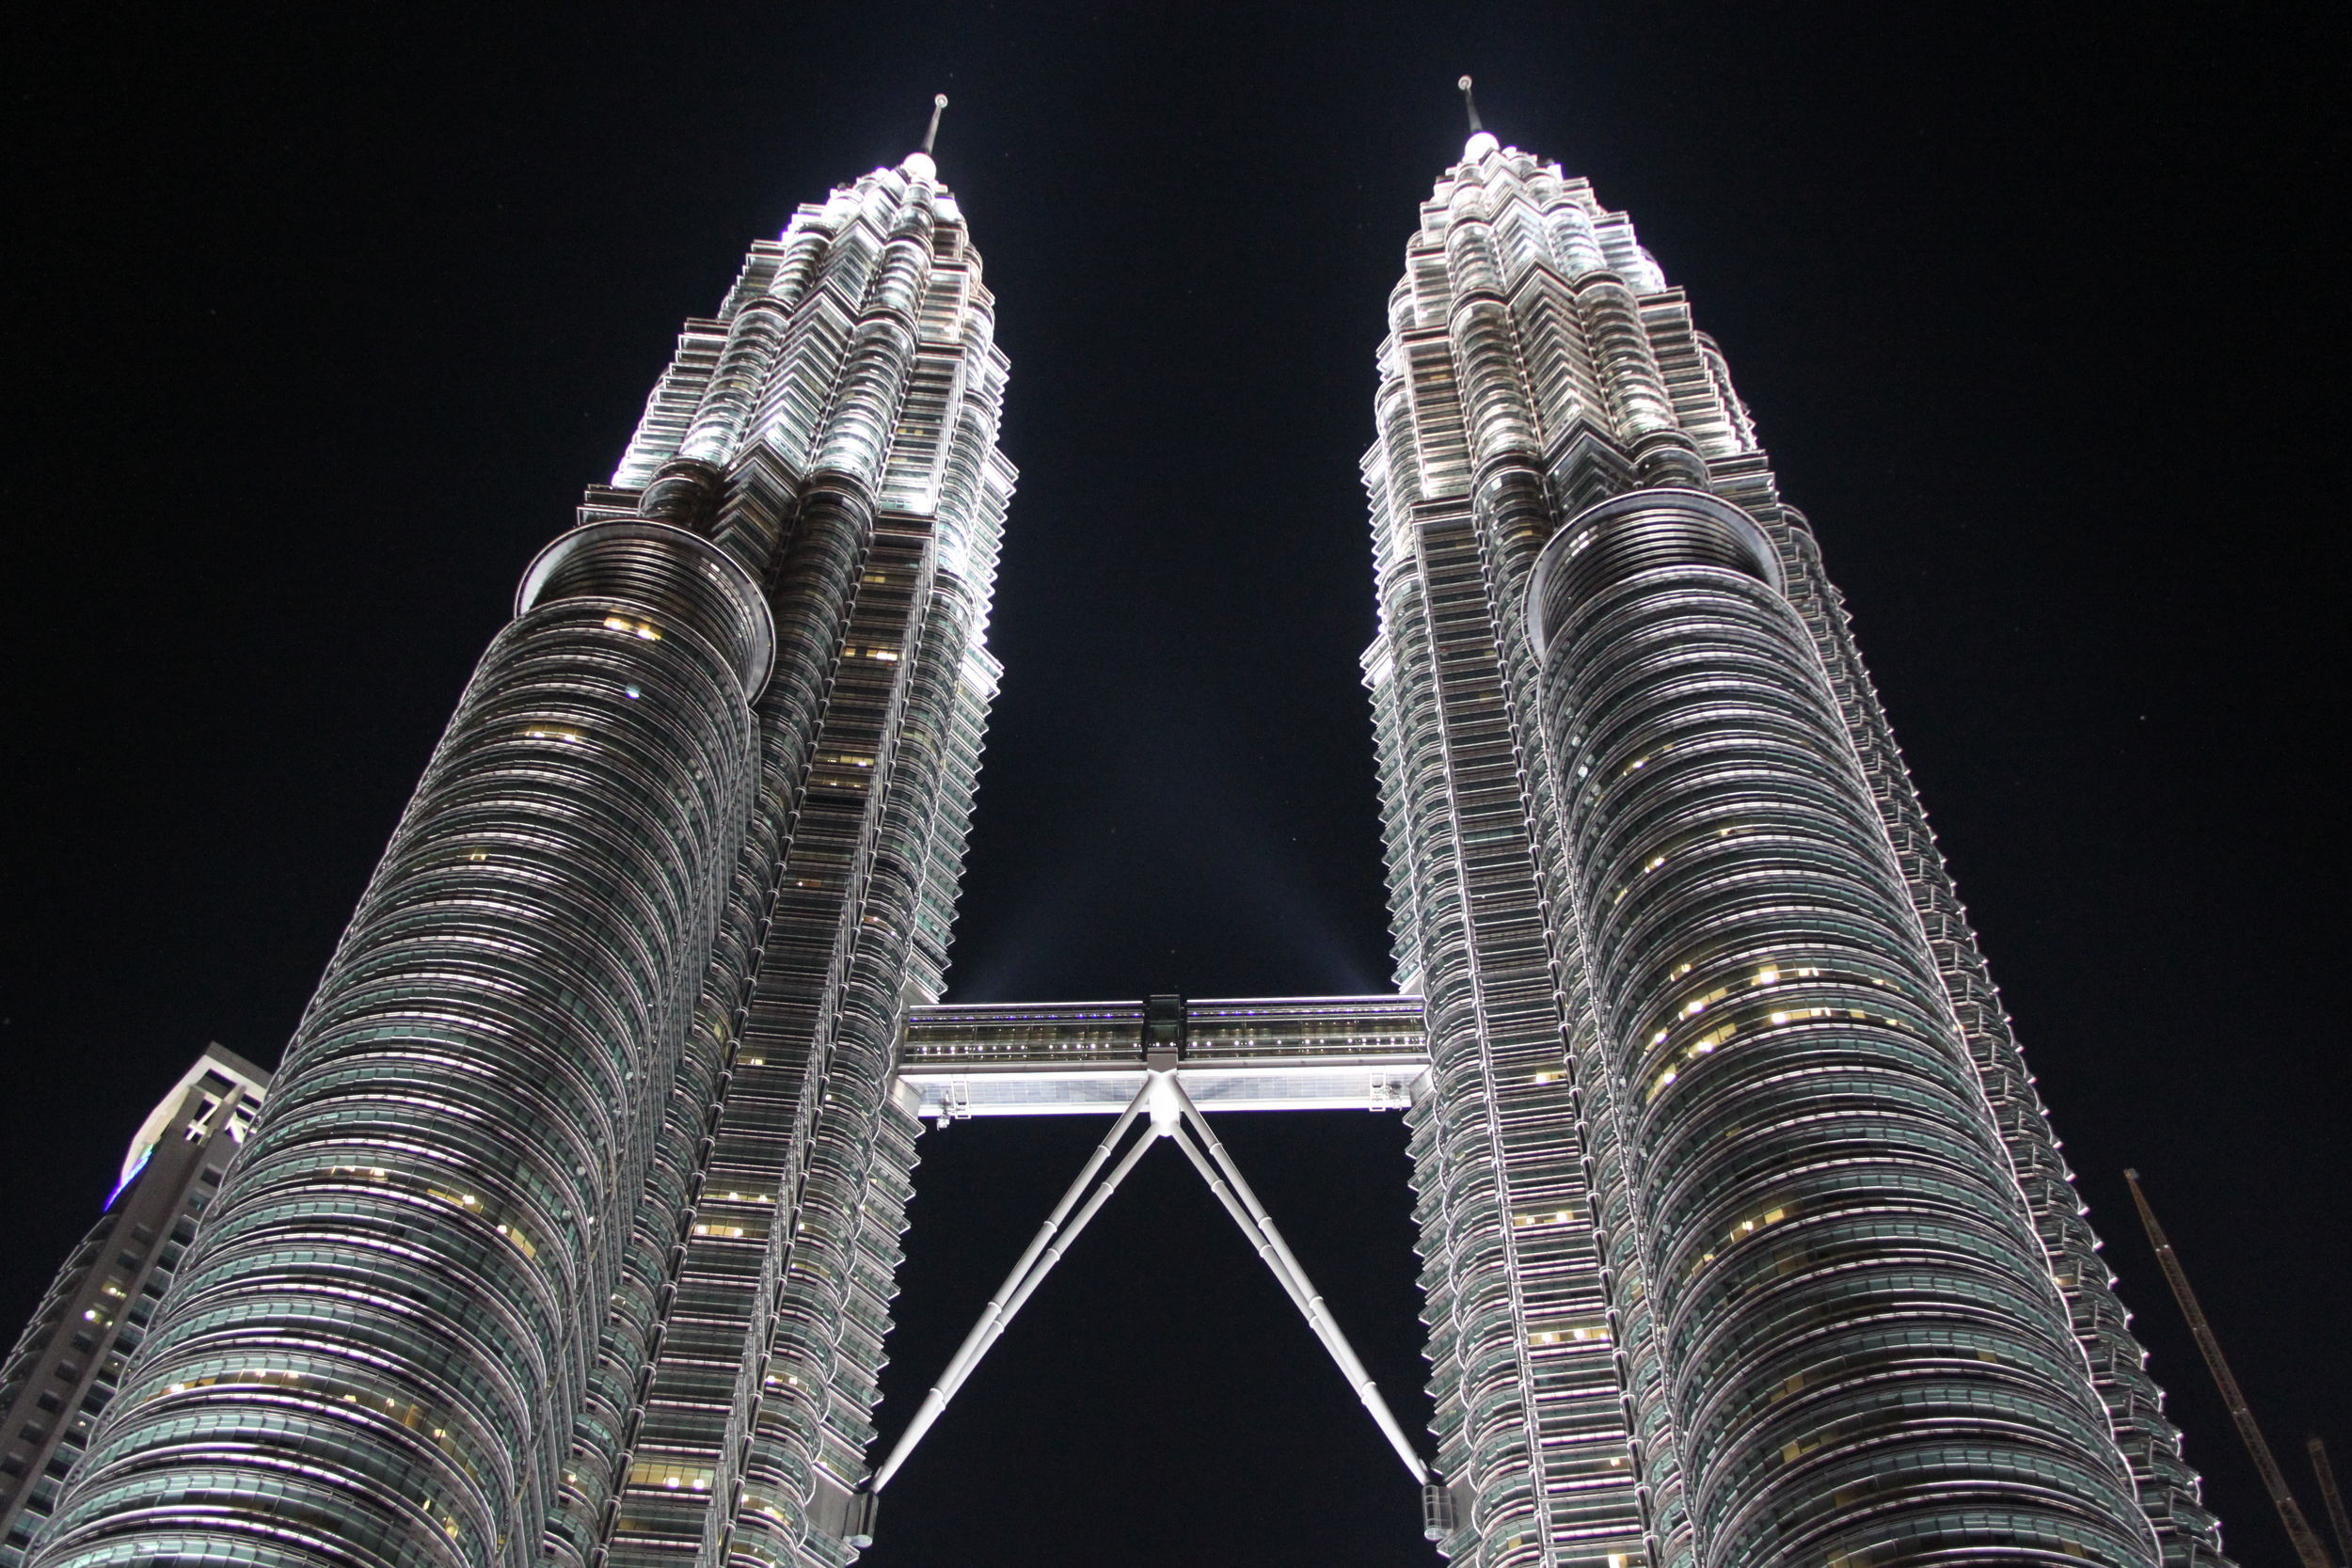 Petronis Towers at night